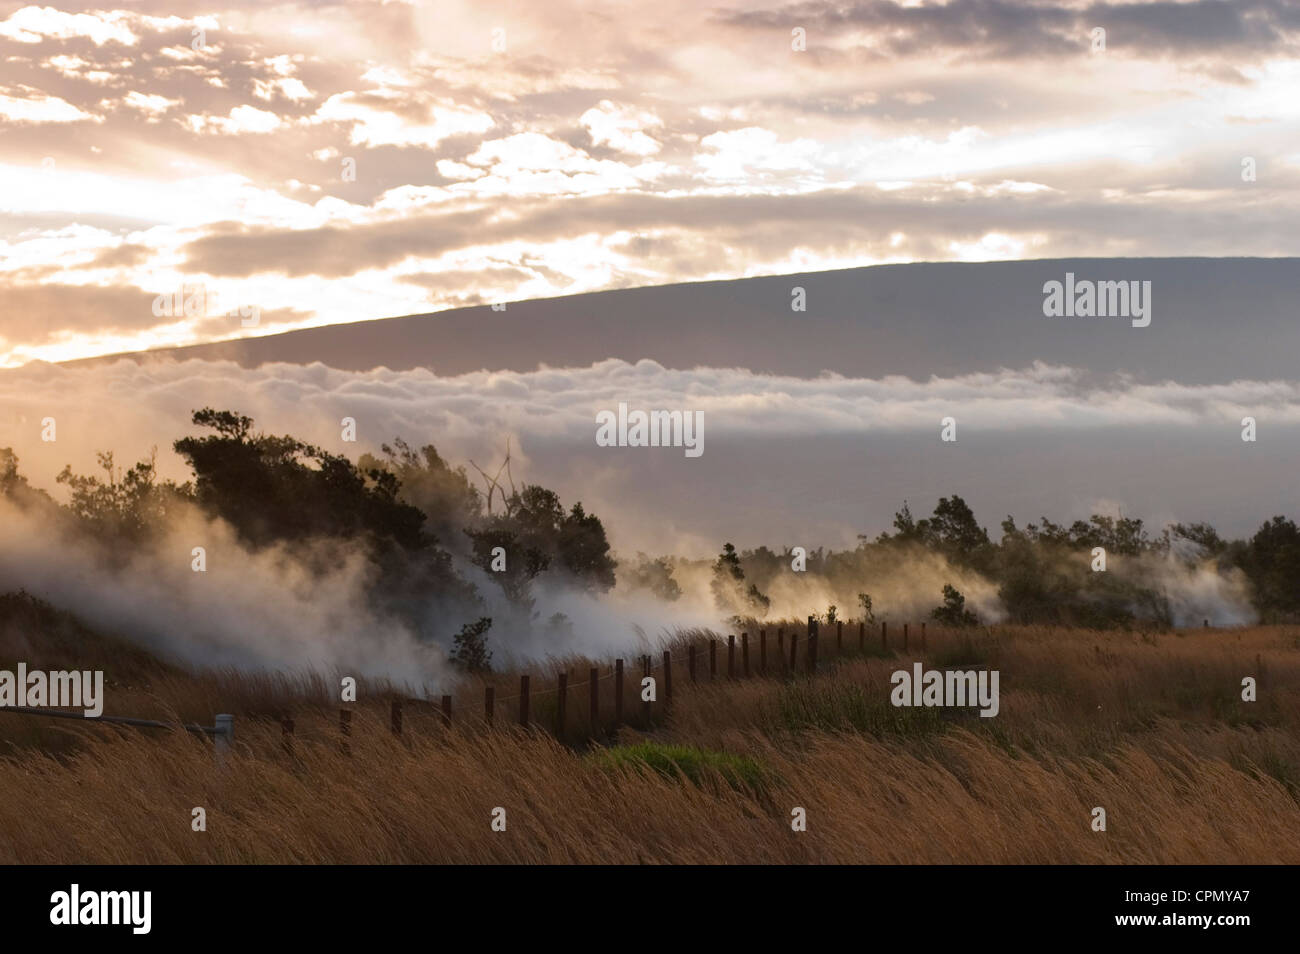 Elk284-2282 Hawaii, HI, Volcanoes NP, Steaming Bluff landscape, steam vents - Stock Image